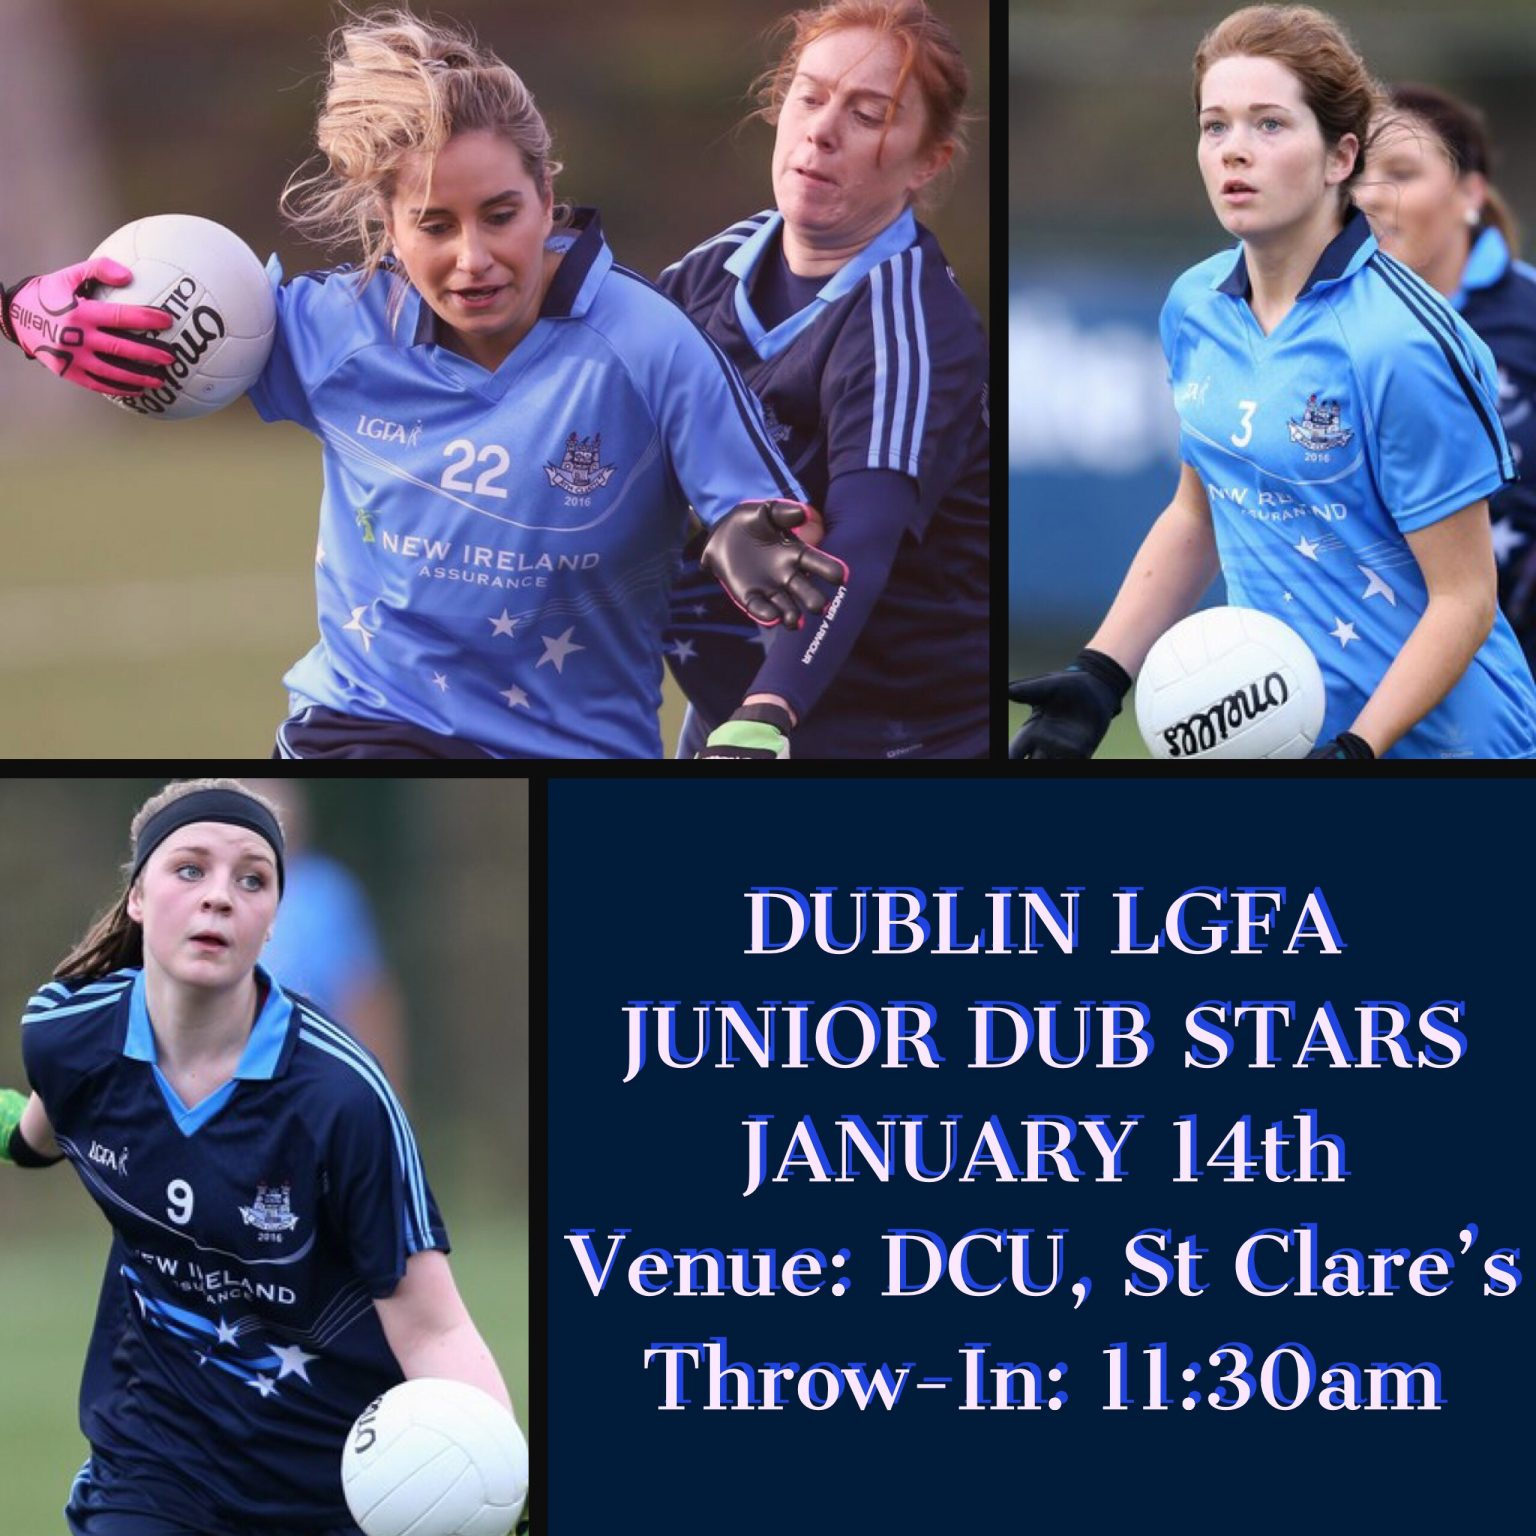 NEW IRELAND ASSURANCE DUBLIN LGFA JUNIOR DUB STARS